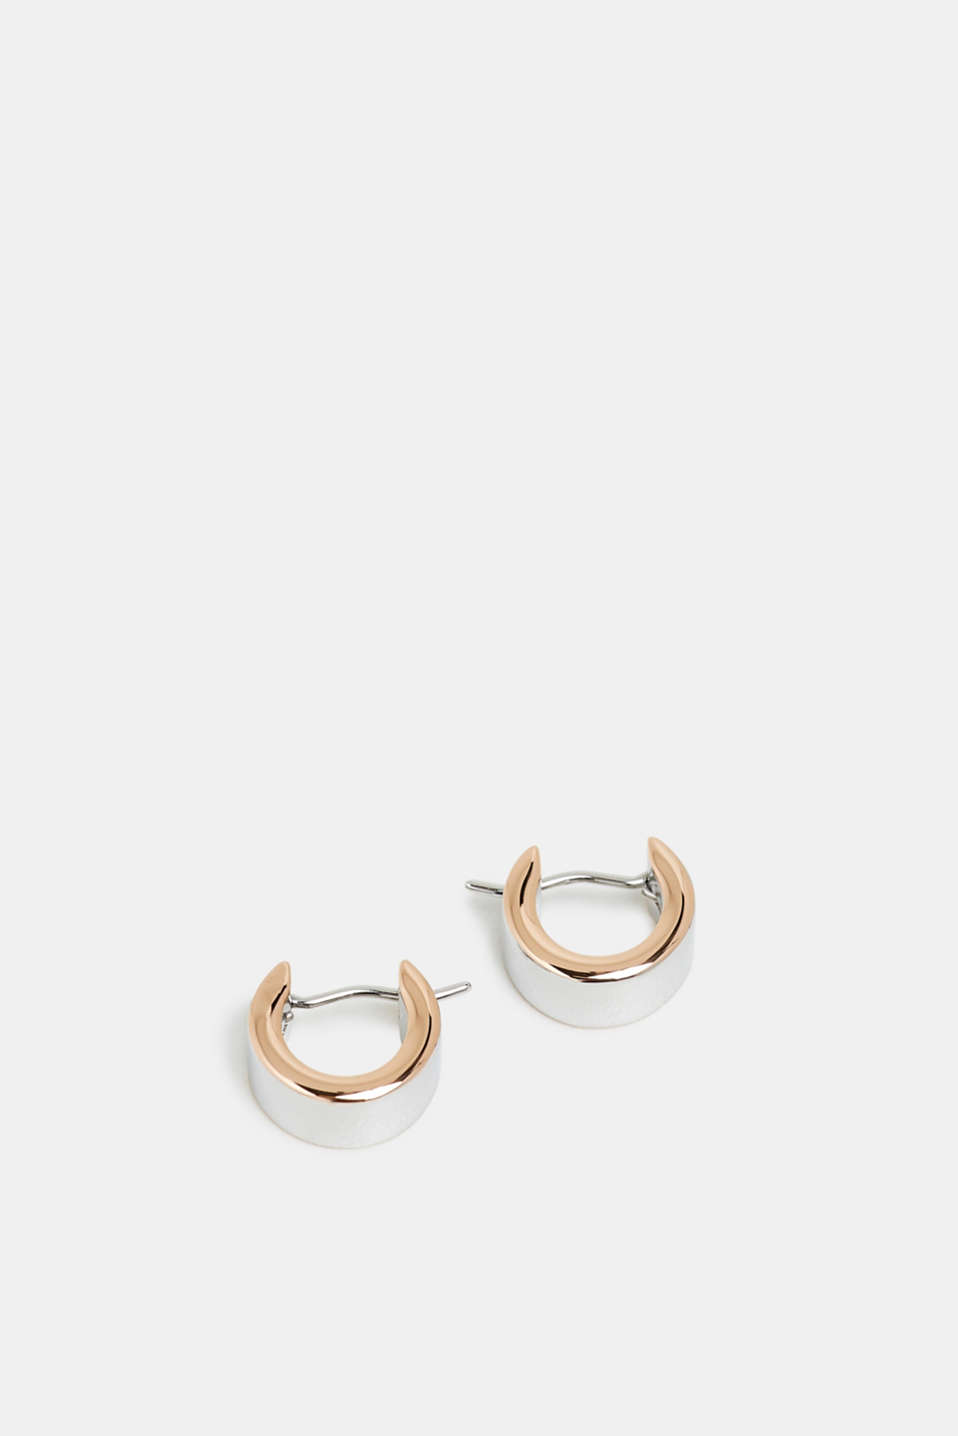 Two-tone earrings in stainless steel, ROSEGOLD, detail image number 1